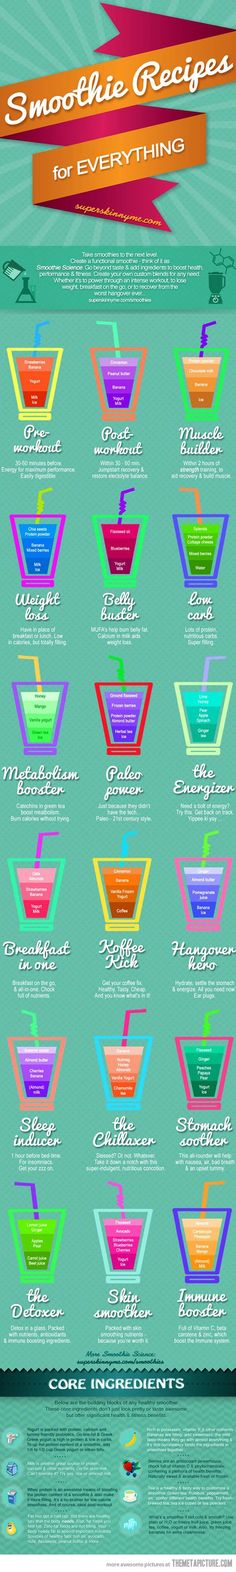 Smoothie Recipes For Everything... - The Meta Picture